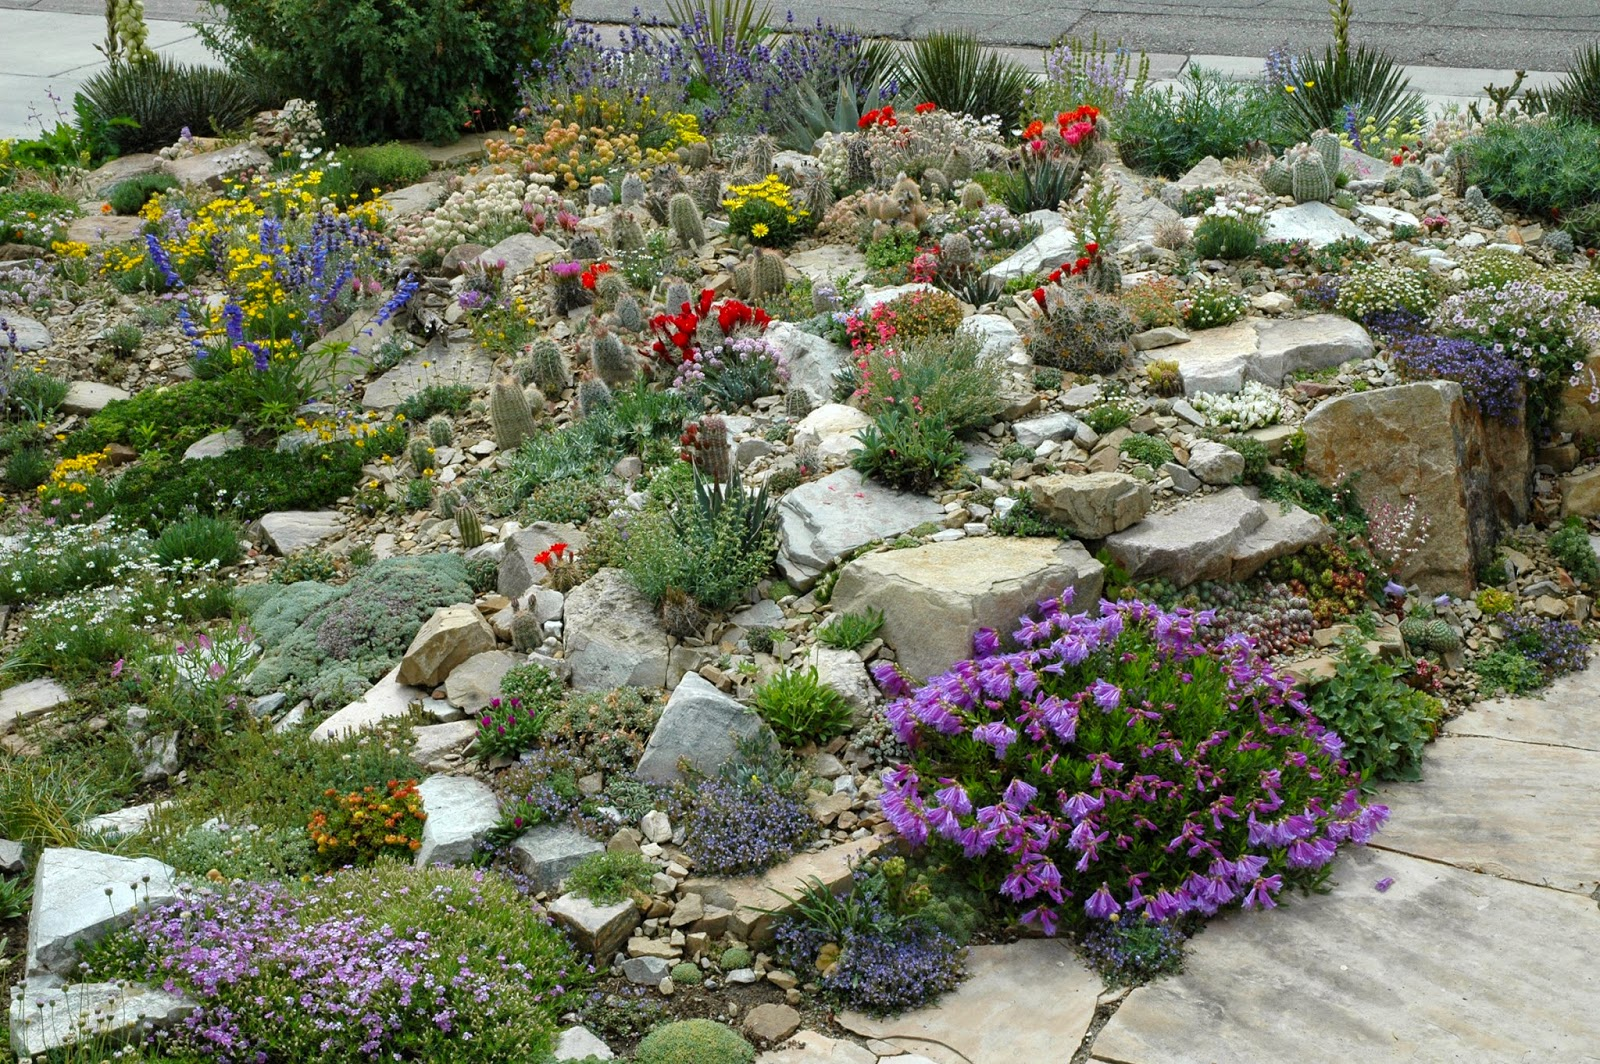 Paintbrush Gardens, LLC: CREVICE GARDENS